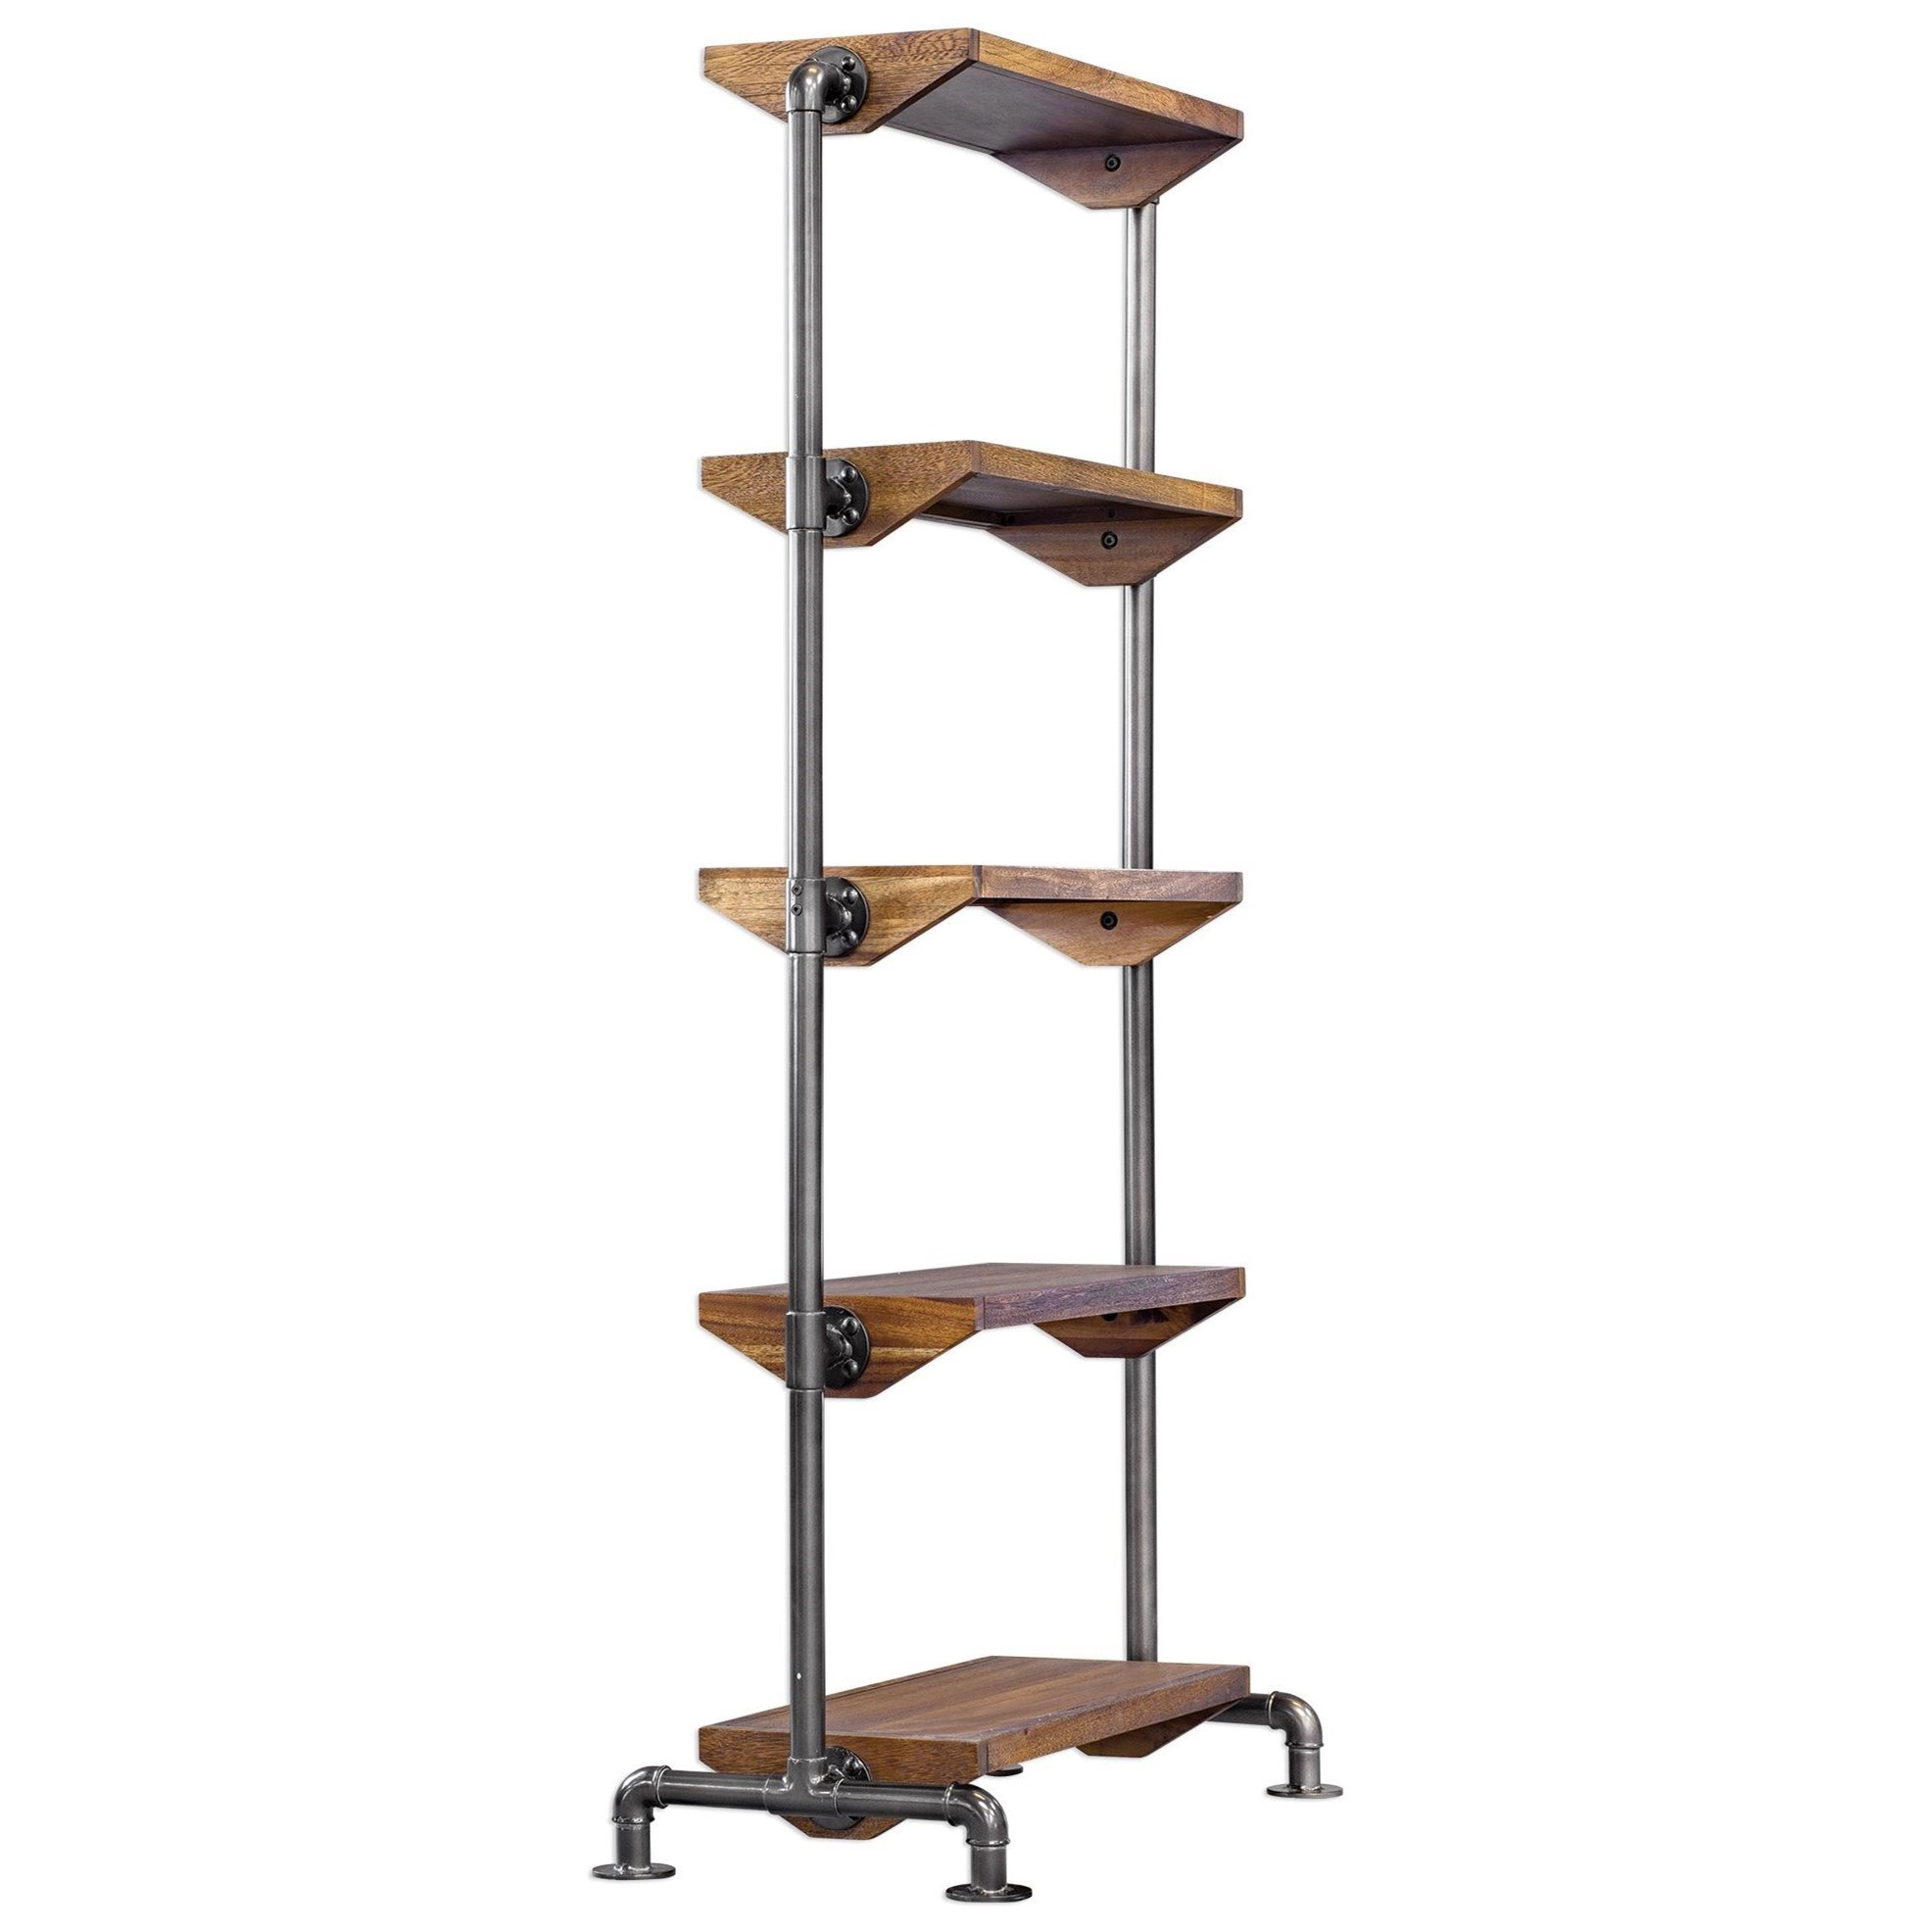 Accent Furniture - Bookcases Rhordyn Industrial Etagere by Uttermost at Mueller Furniture